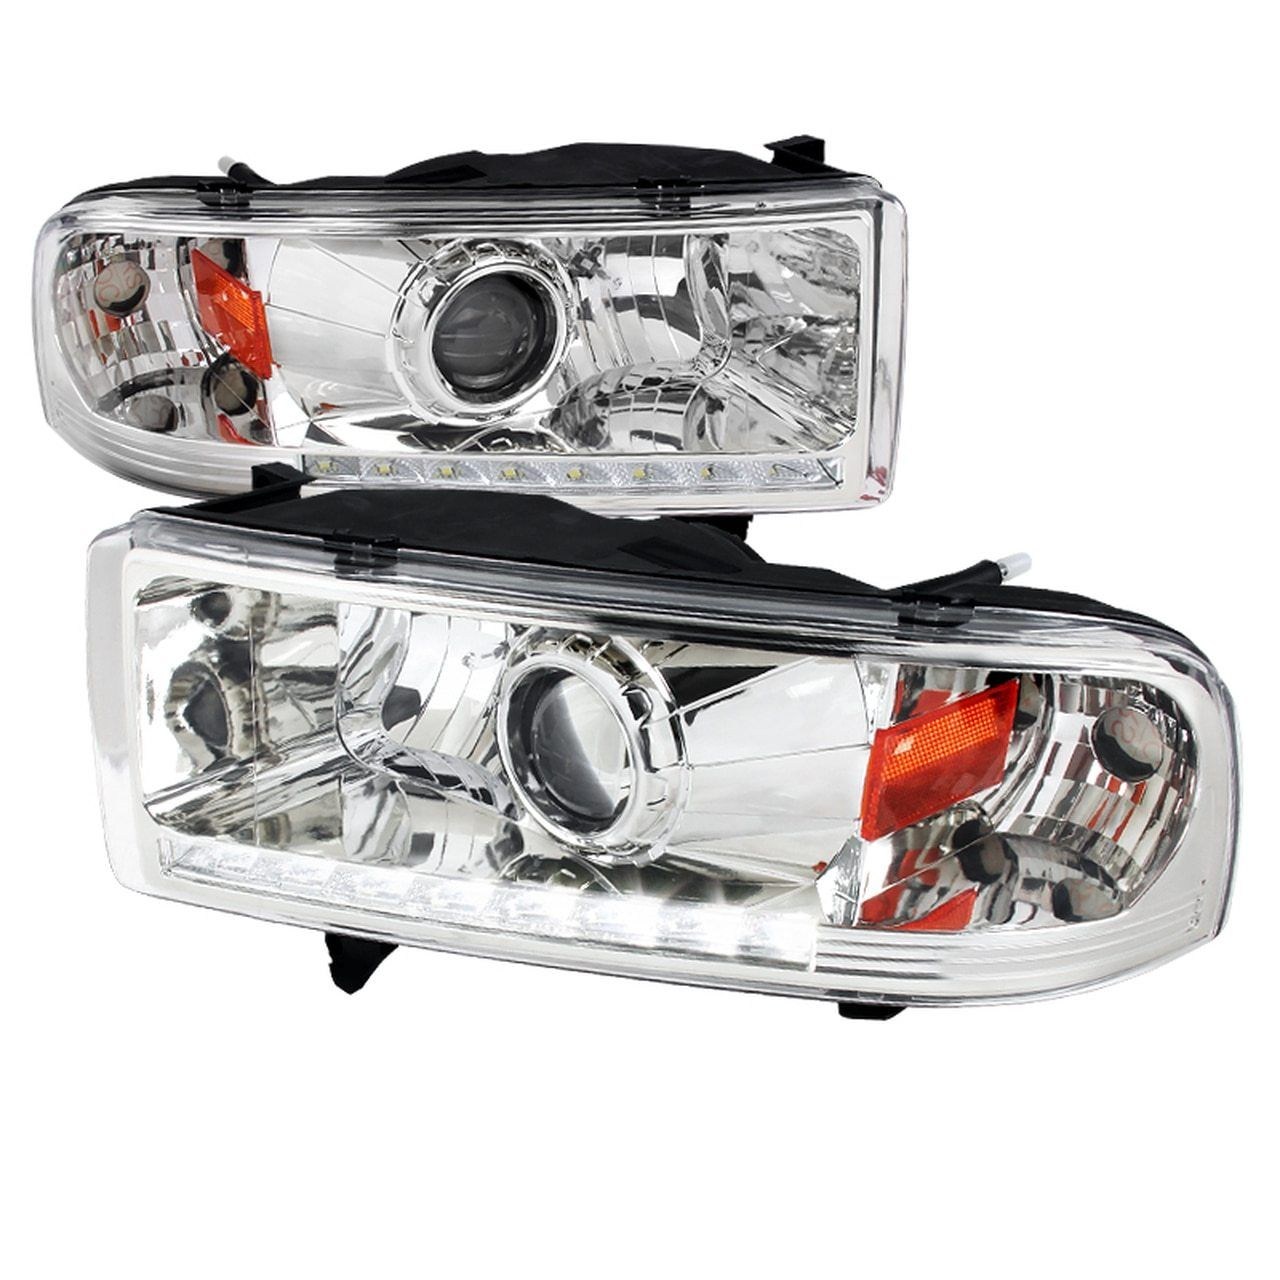 Spec D Projector Headlights Dodge Ram Led Drl Strip 94 01 Black Smoked Chrome In 2021 Projector Headlights Dodge Ram Headlights